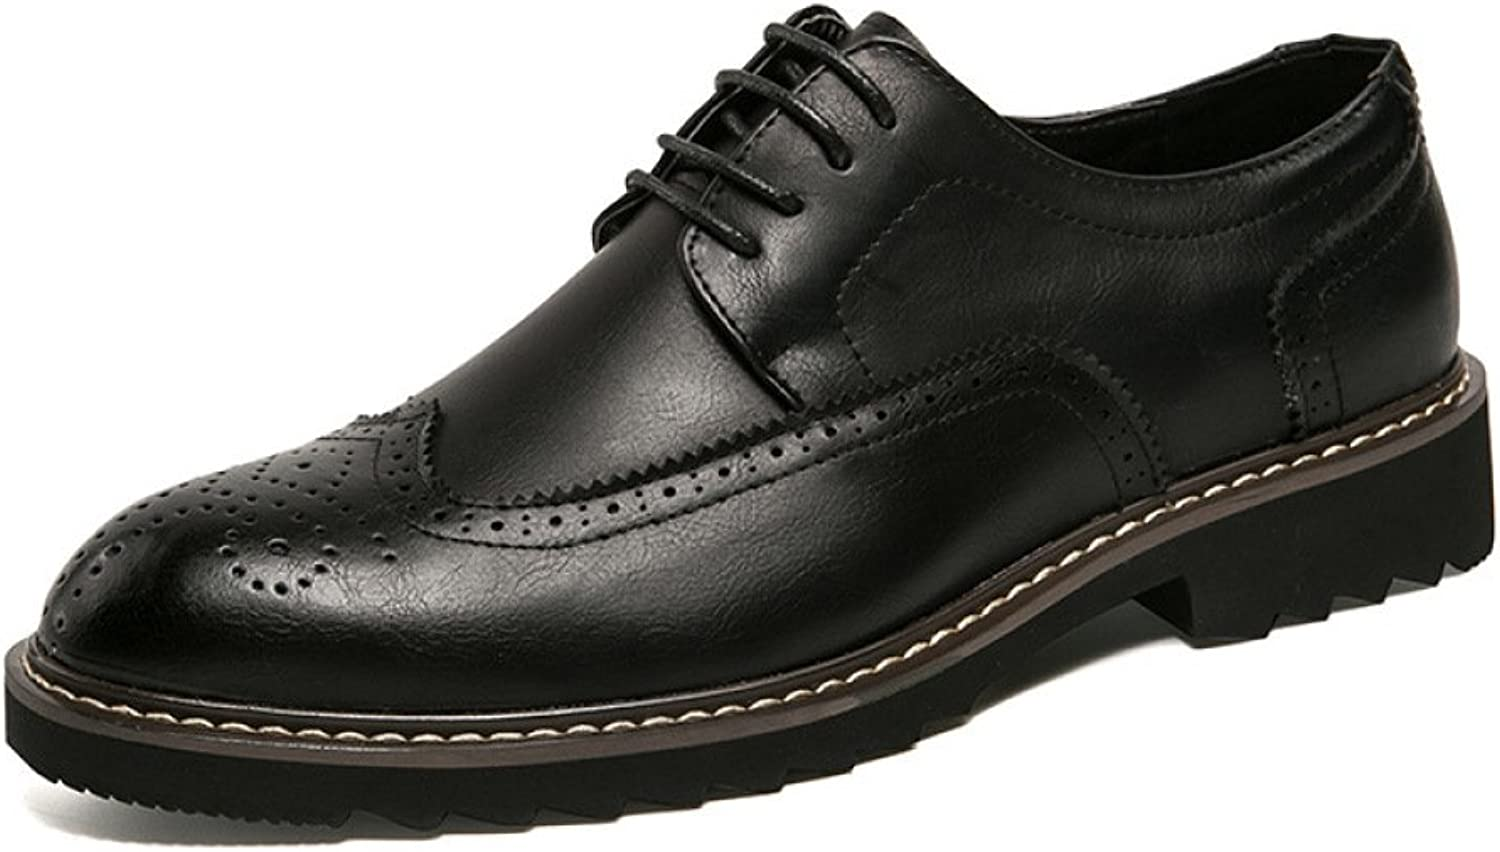 DHFUD Breathable Carved Men's shoes